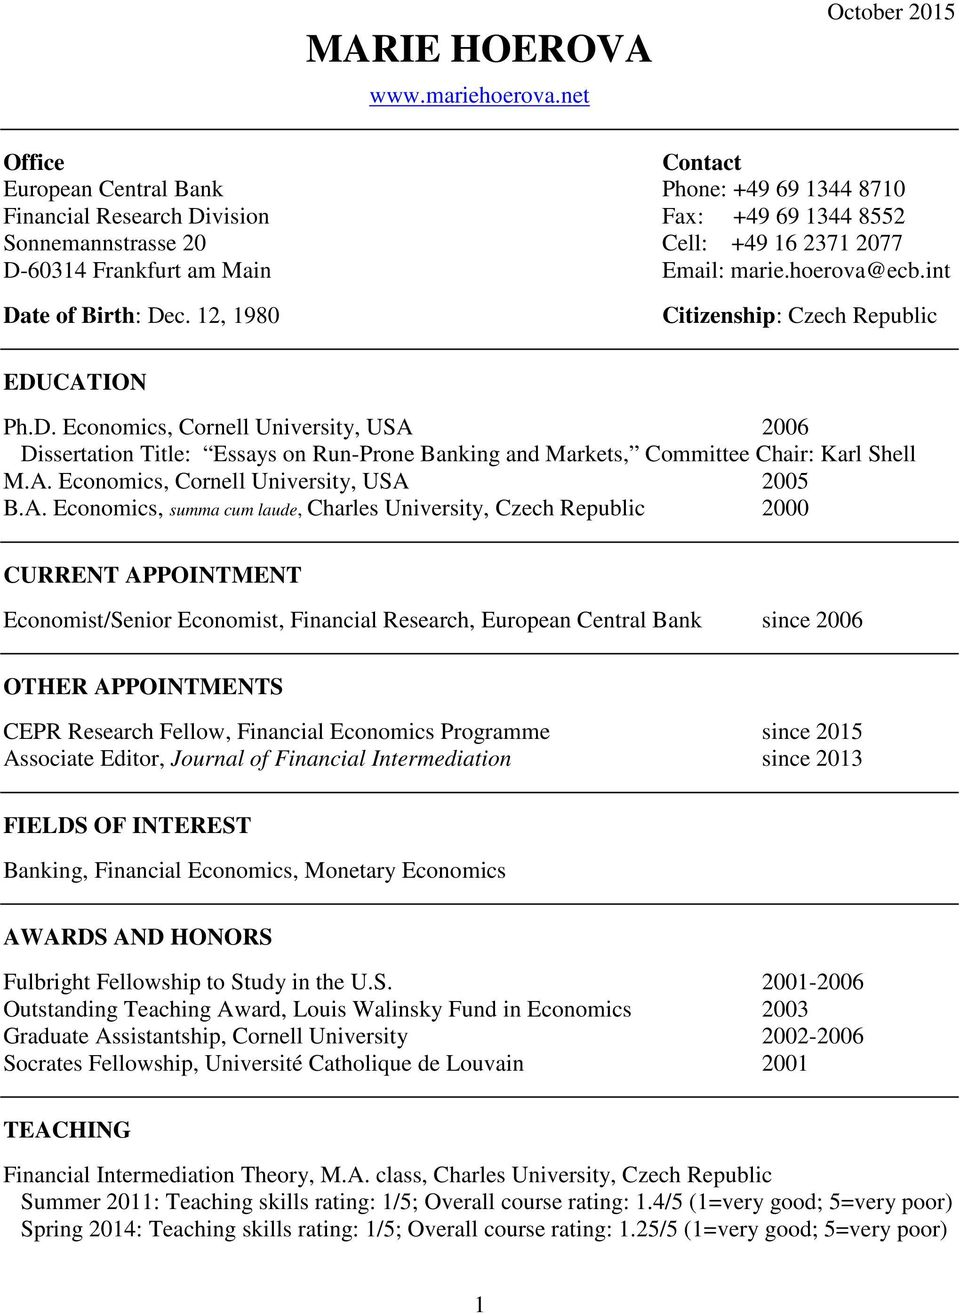 Email: marie.hoerova@ecb.int Date of Birth: Dec. 12, 1980 Citizenship: Czech Republic EDUCATION Ph.D. Economics, Cornell University, USA 2006 Dissertation Title: Essays on Run-Prone Banking and Markets, Committee Chair: Karl Shell M.